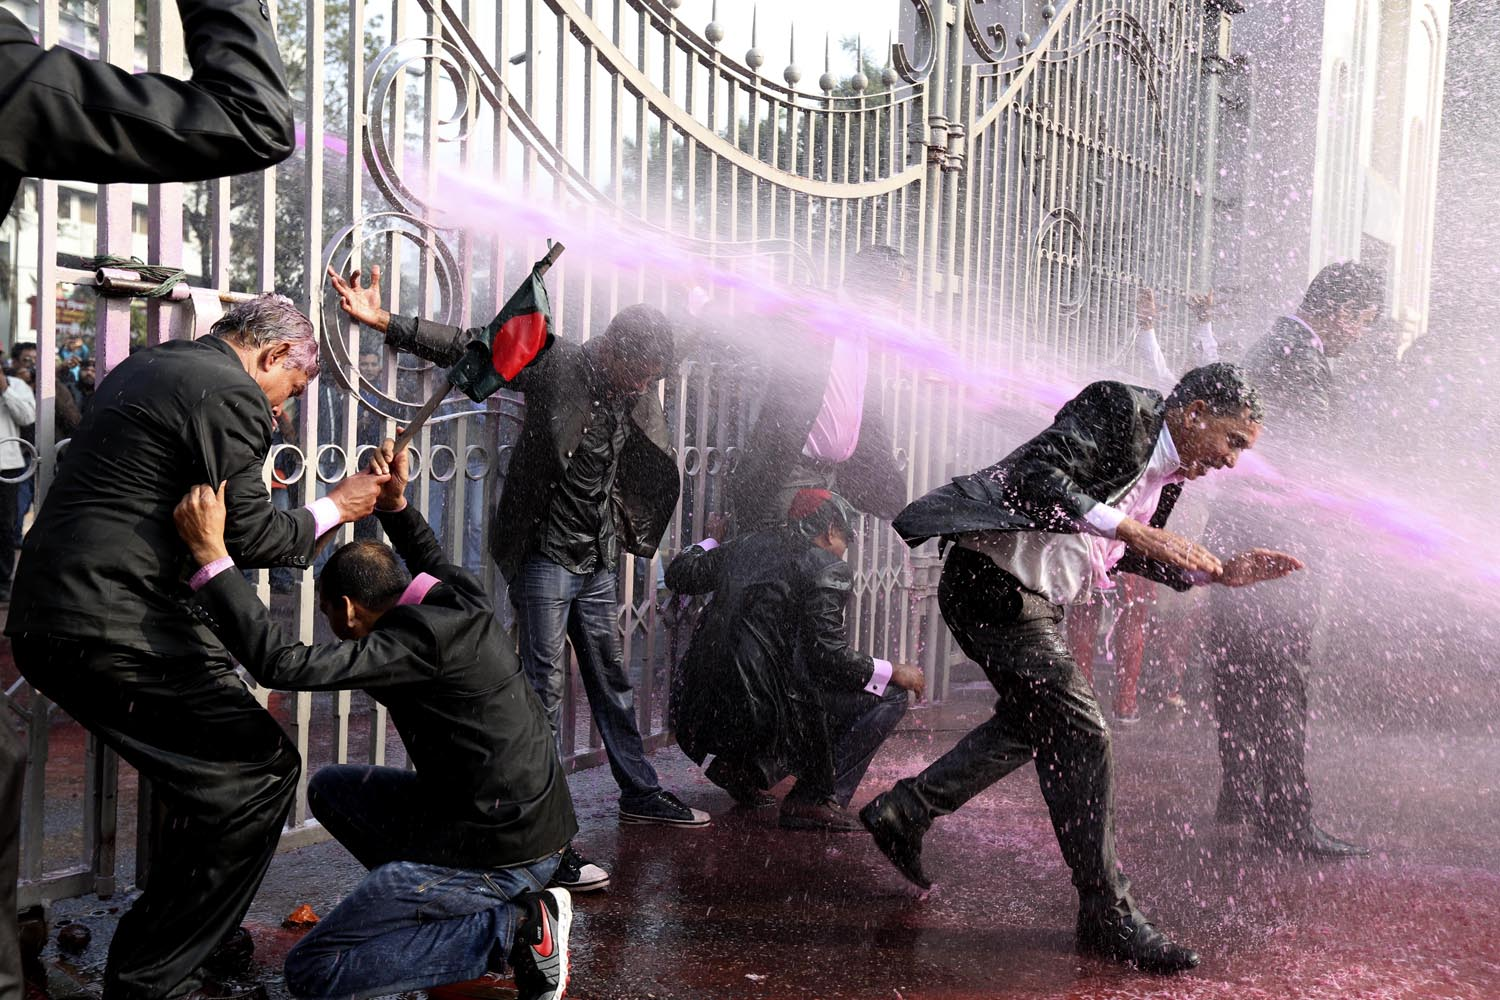 Dec. 29, 2013. Bangladesh Nationalist Party (BNP) supported lawyers are hit by a police water cannon in front of the main gate of the Supreme Court during the March For Democracy protest rally in Dhaka, Bangladesh.